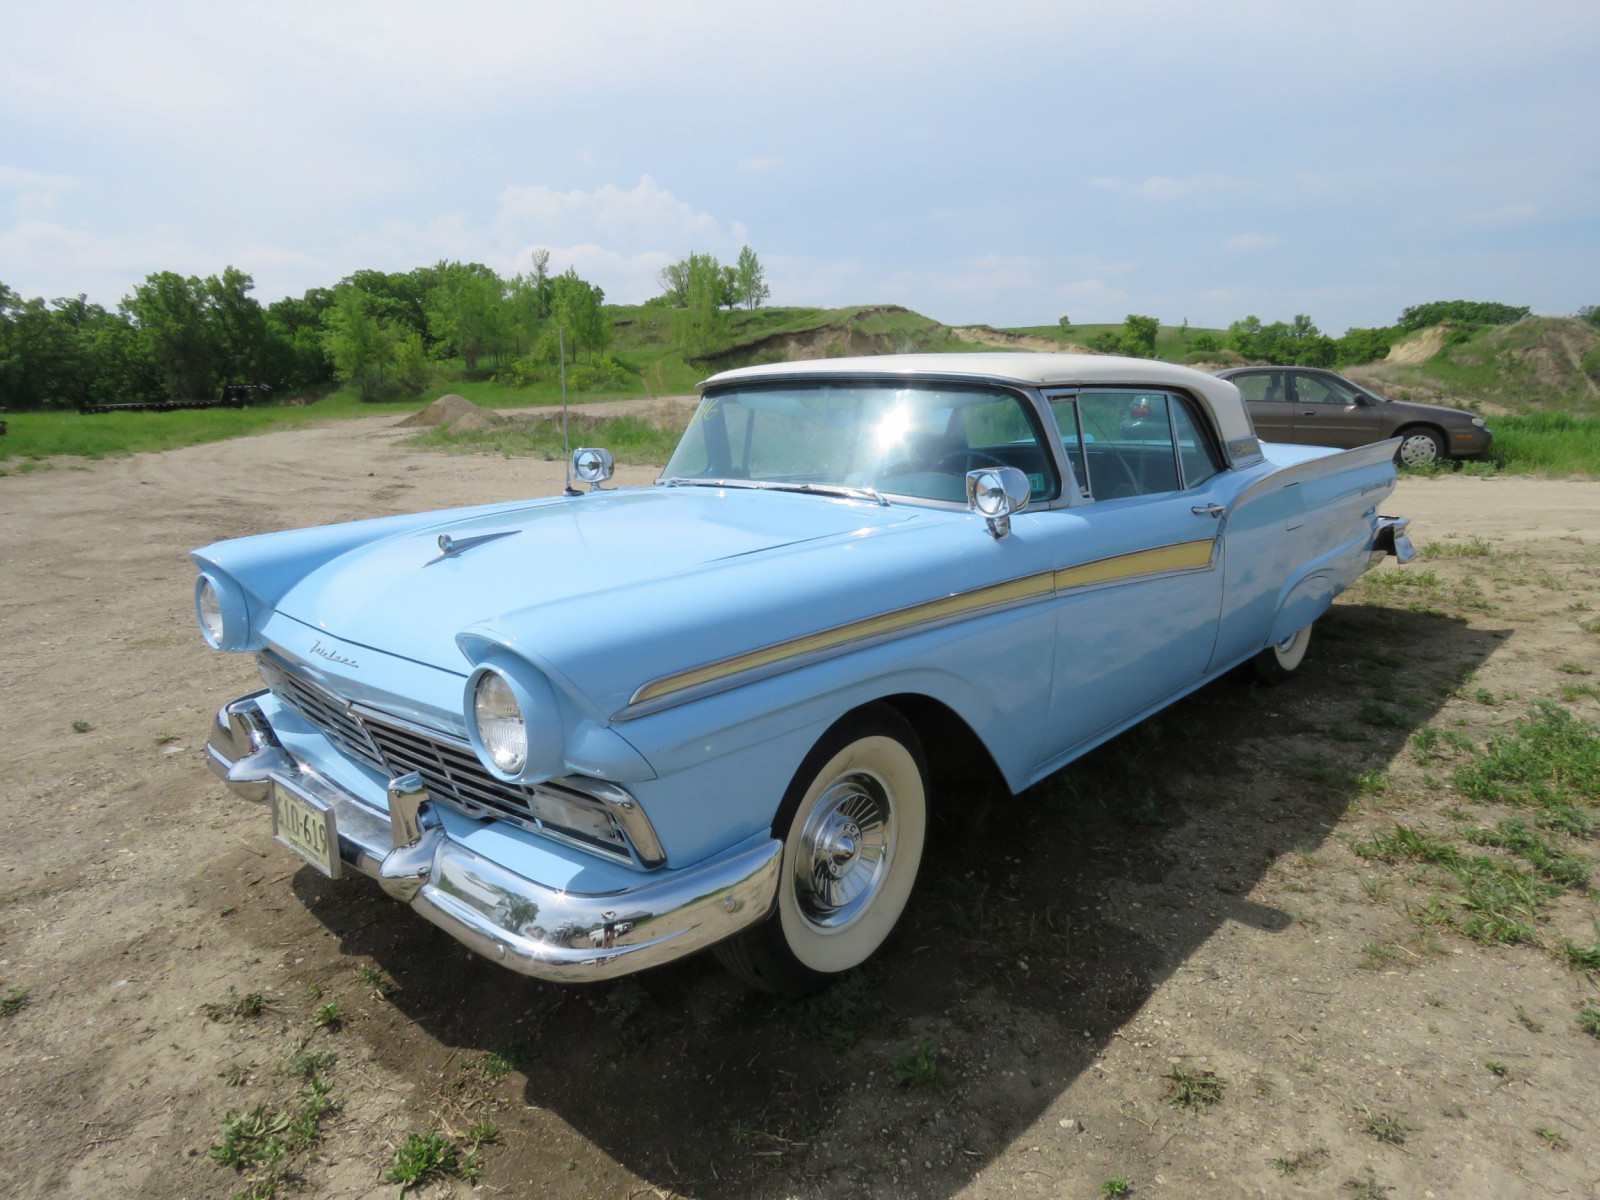 1957 Ford Fairlane Sky liner Retractable Hardtop D7FW308466 - Image 3